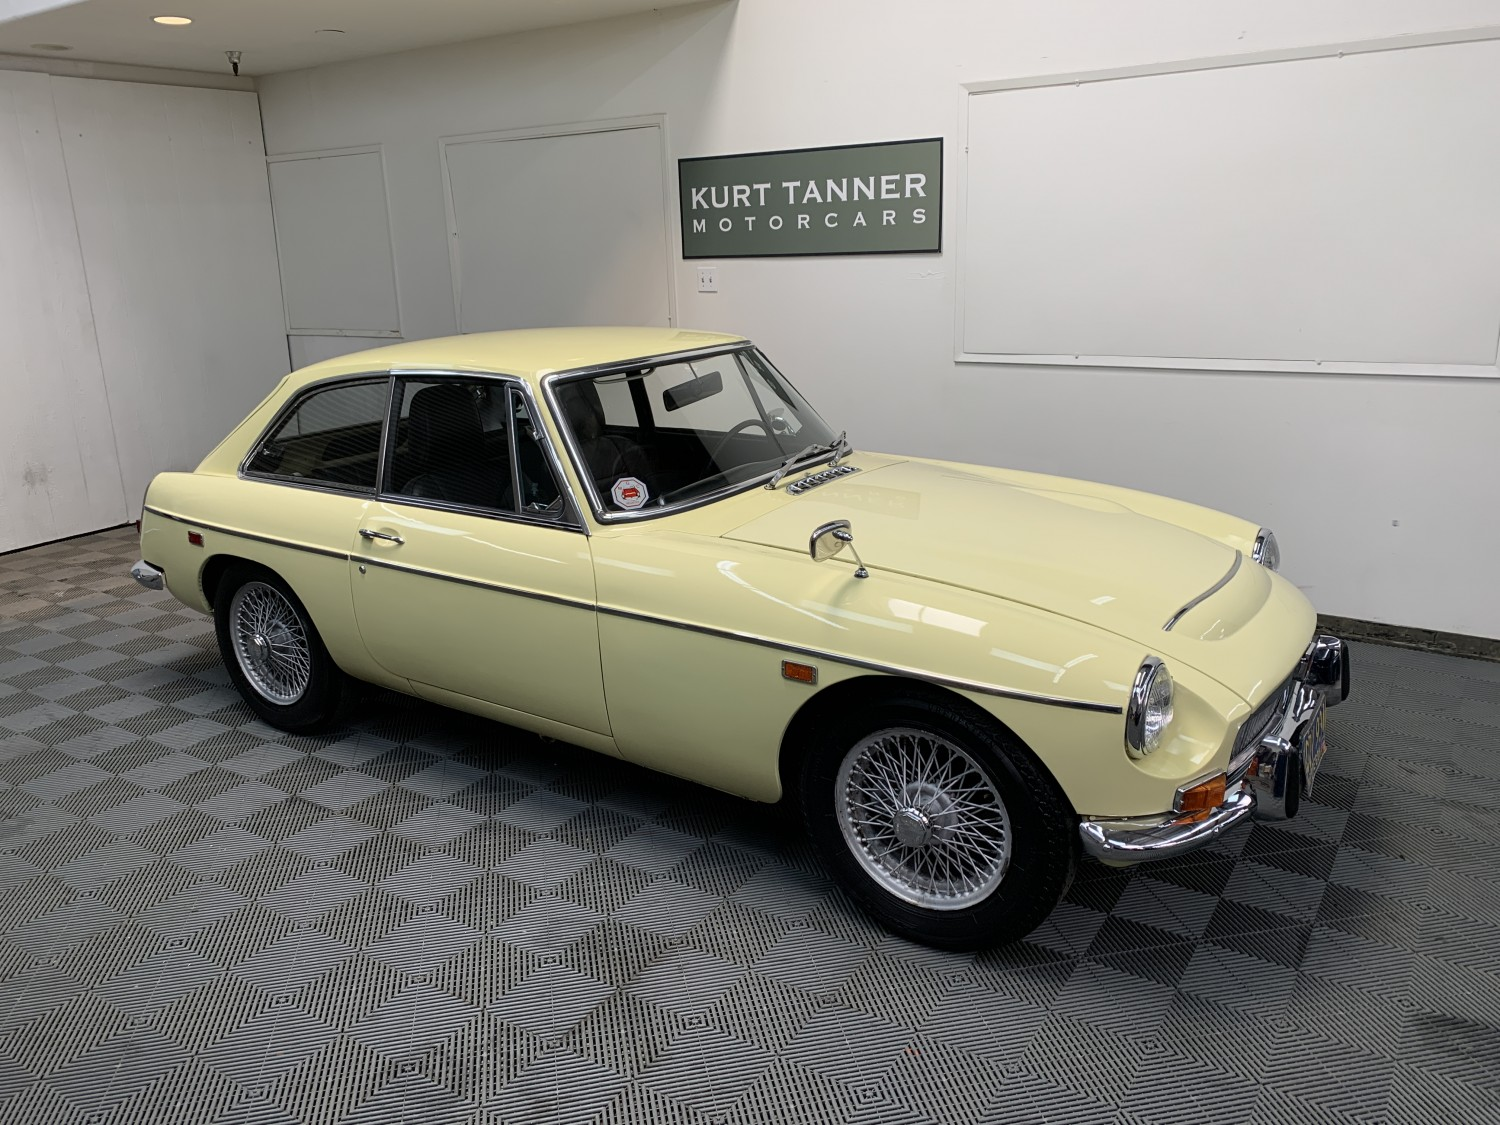 1969 MGC GT SPORTS COUPE. PRIMROSE YELLOW WITH BLACK INTERIOR. 2.9 LITERS, 6-CYLINDER. 4-SPEED WITH OVERDRIVE GEARBOX. WIRE WHEELS. SUPERB, WELL-PRESERVED ORIGINAL CAR SHOWING 31,932 MILES.